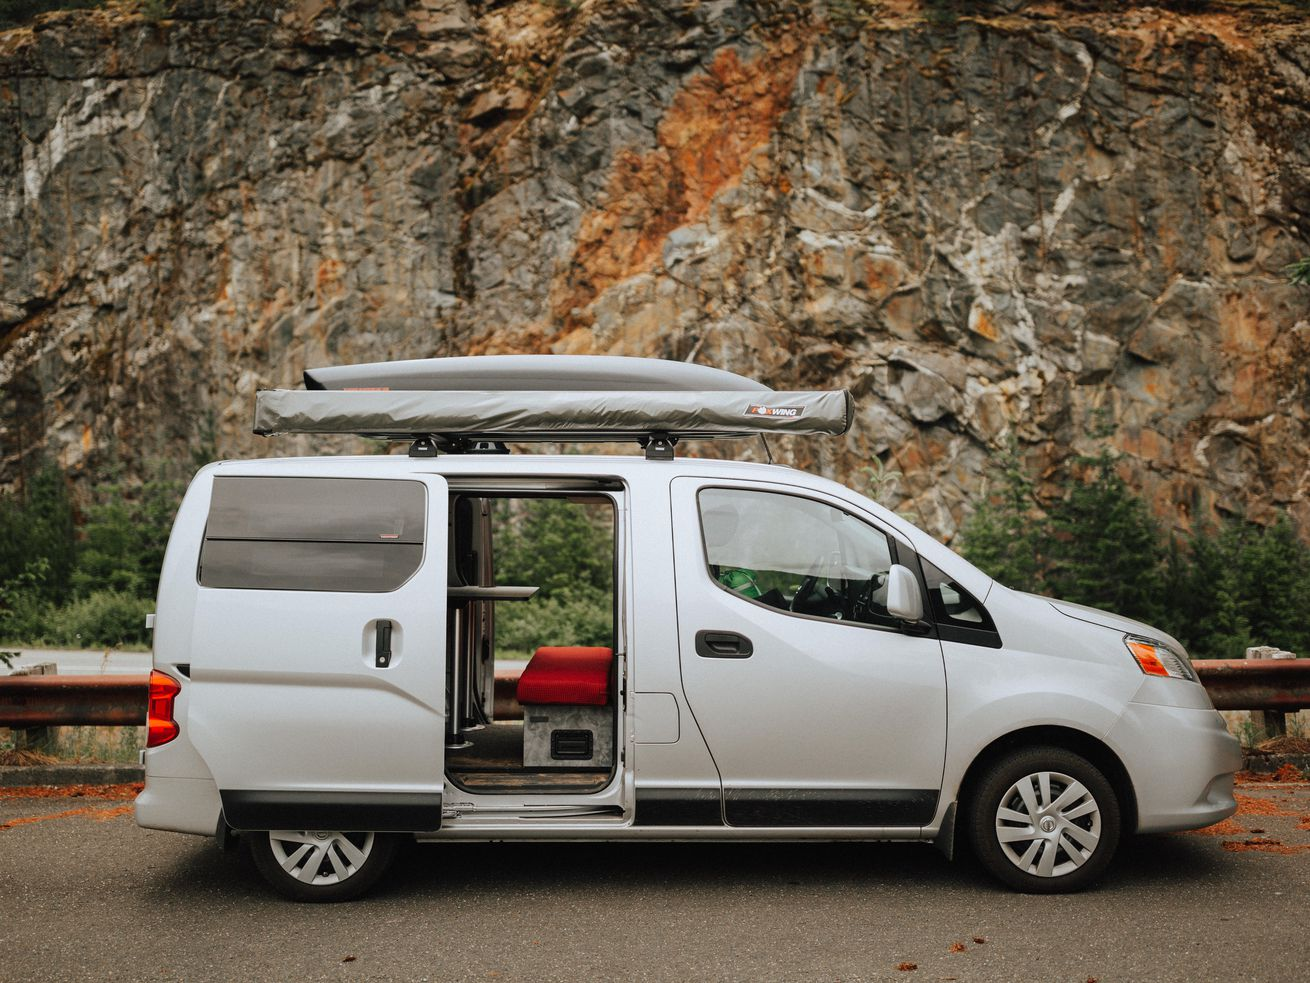 The Free Bird from Washington-based Caravan Outfitters brings an affordable camper van option to the masses.